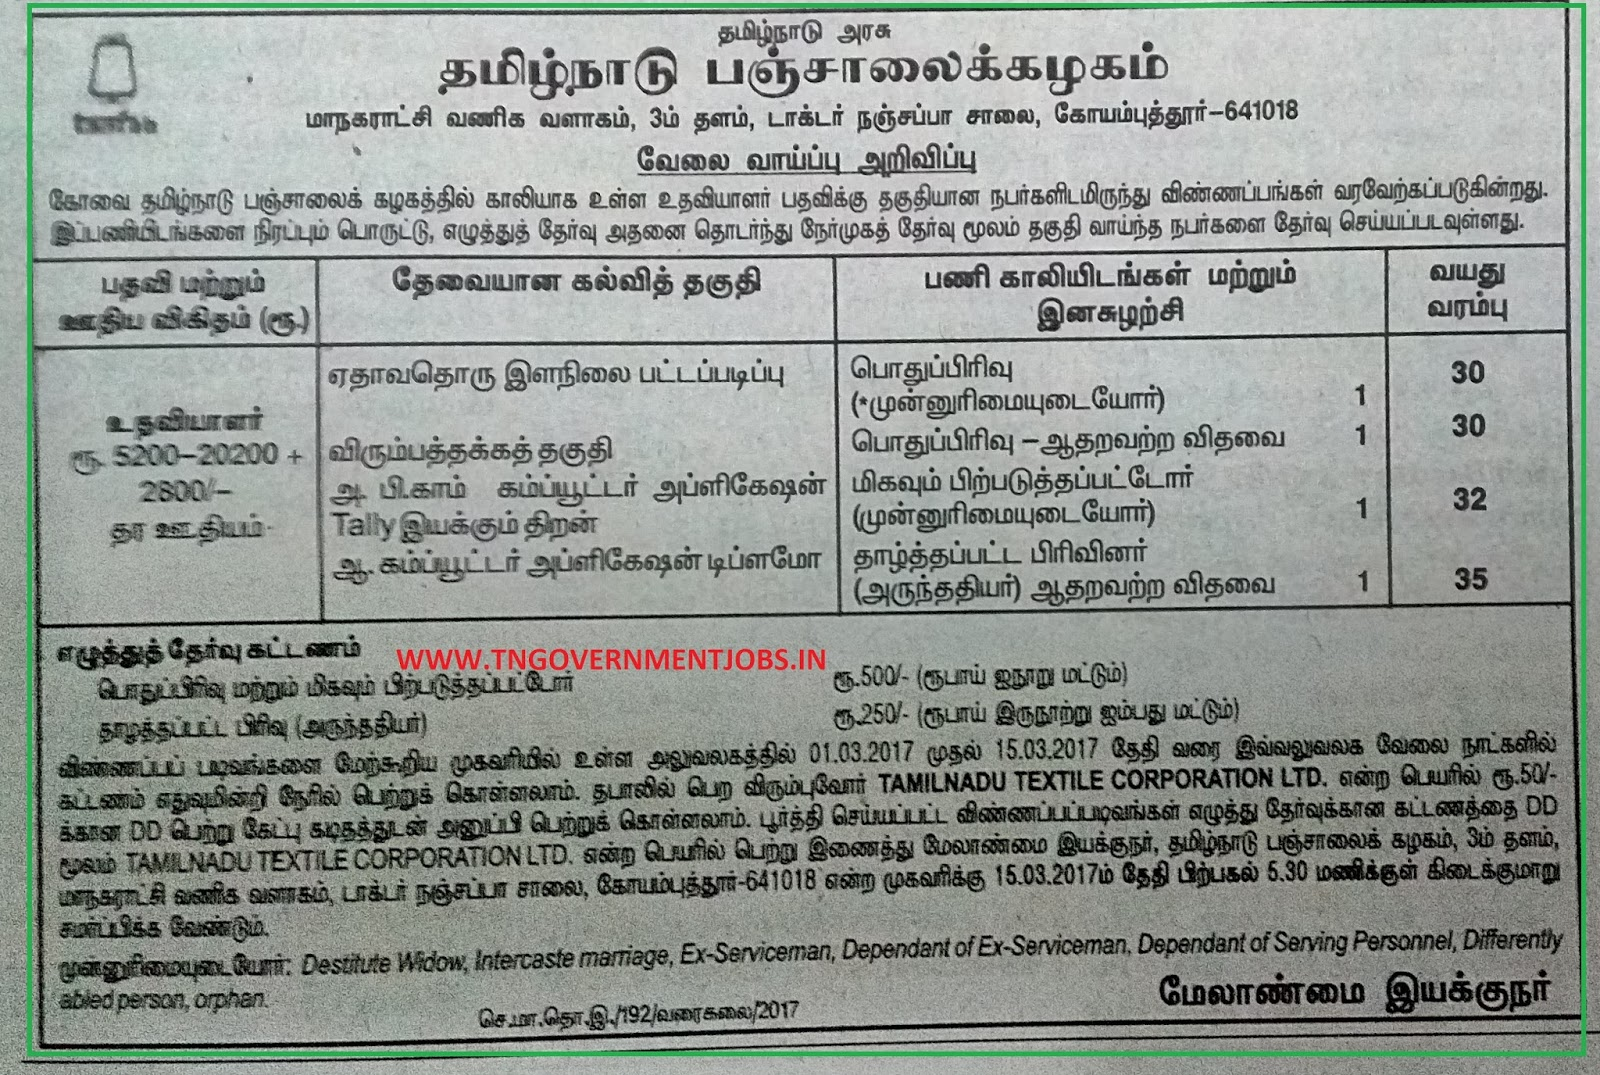 Recruitment of Assistant Post in Tamil Nadu Textile Corporation Ltd (TNTCL) Coimbatore